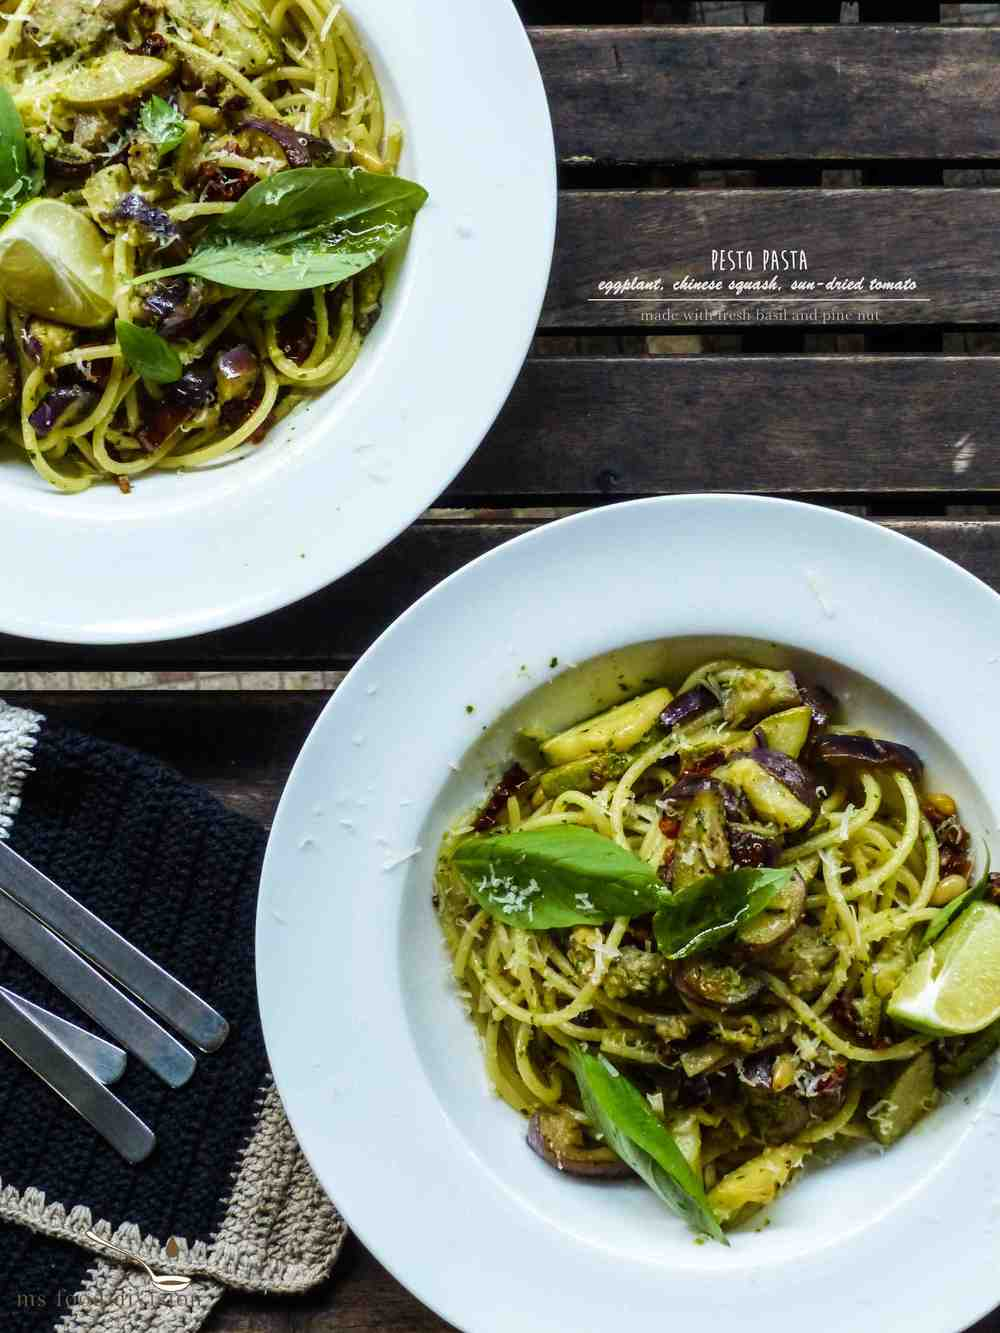 Servings: 2 persons    Preparation Time: 10 minutes    Cooking Time: 10-15 minutes    Ingredients:    1/2 eggplant, diced  1/2 chinese squash, diced  2 garlic cloves, chopped  2-3 tbsp fresh pesto*  2 sun-dried tomato, chopped   sprig fresh basil leaves  1-2 tsp pine nuts  1/2 glass dry white wine  extra-virgin olive oil  1 cup reserved pasta water  1-2 tbsp grated parmesan  1/2 fresh lime juice  150-200g spaghetti  * fresh pesto is made out of a bunch of fresh basil leaves, extra-virgin olive oil, 1 garlic clove, roasted pine nuts, and grated parmesan cheese.  Season a bit.      Instructions:      1) Bring a pot of salted water to boil, cook pasta according to the packaging label.     2) Heat a saucepan with oil on medium fire, cook eggplant for 5 minutes with a lid on.  Stir occasionally to avoid burning the eggplant.  Reduce fire if needed.      3) Add squash and garlic, stir a bit.  Add white wine and turn the fire to medium-high.  Let the alcohol evaporates.     4) Reduce heat to medium-low, add sun-dried tomato and pine nut to the pan, cook for 1-2 minutes.  Season*.  Add 1/2 ladle of salted pasta water.  Simmer the vegetables in low heat with a lid on for 3-5 minutes.      5) When the pasta is ready, transfer the pasta to the saucepan.  Mix well.  Heat off.  Add less than 1/3 ladle of pasta water and fresh pesto to the pasta.  Mix well.      6) Garnish the pasts with fresh basil leaves and grated parmesan cheese.  Drizzle a little oil and add a twist of fresh lime juice.      * I didn't add salt to my seasoning because I used the pasta water that was already salted.  So please bear in mind when you add seasoning.  I only added black pepper as to season my vegetables.